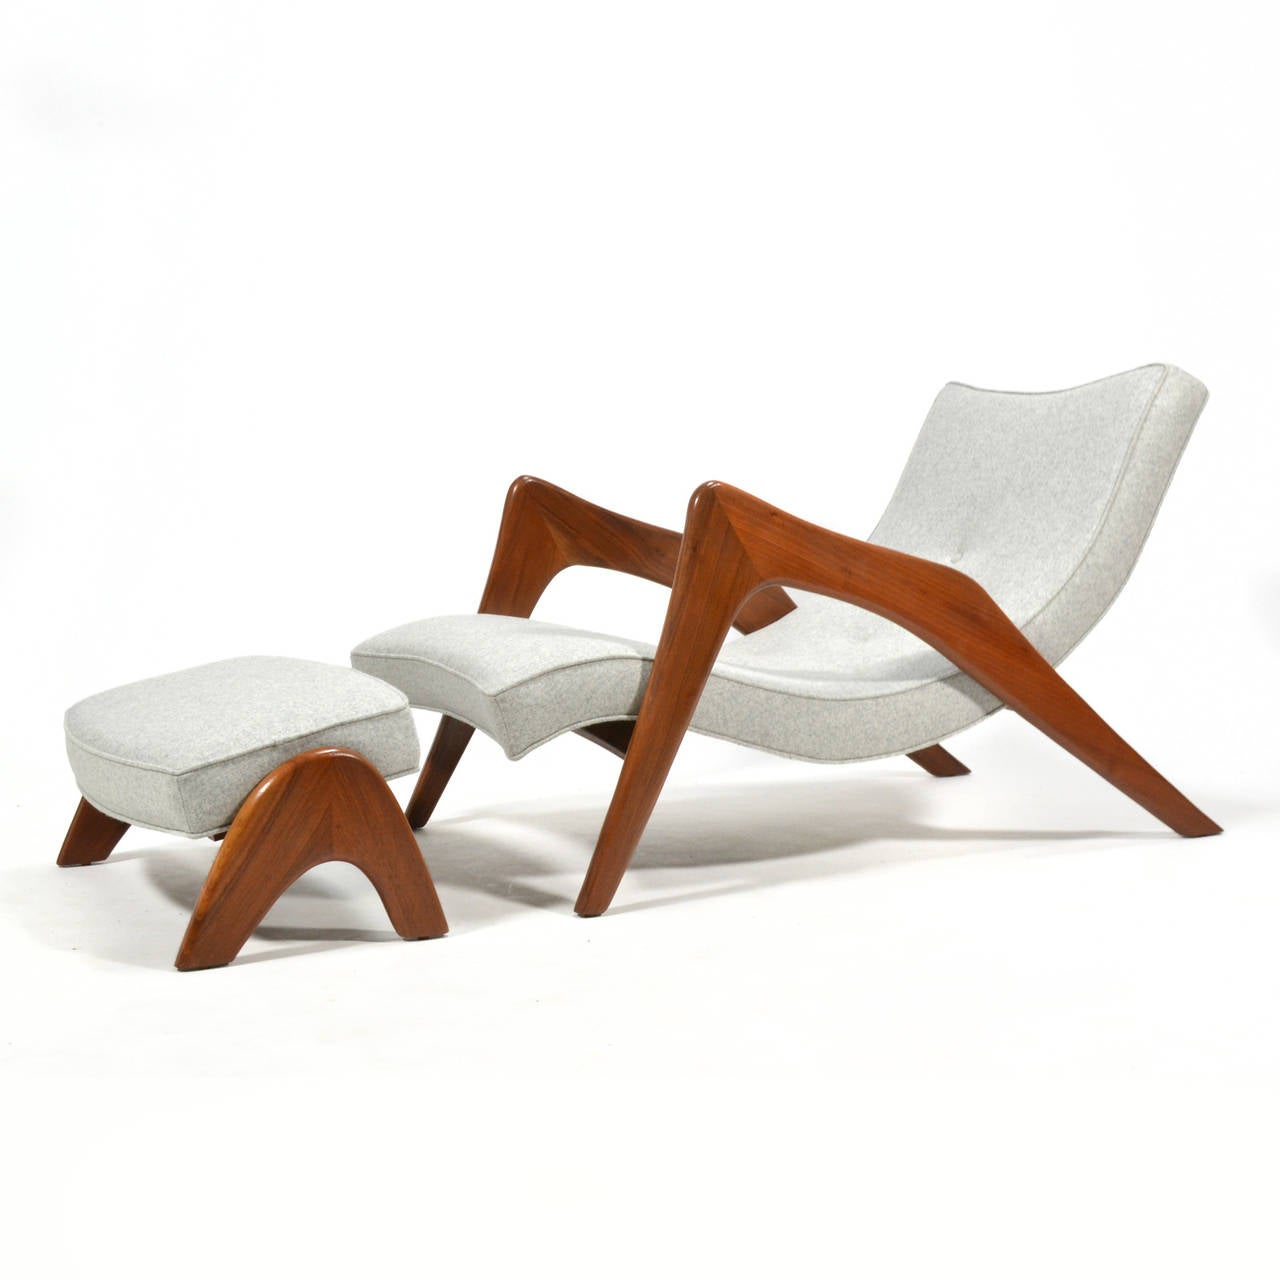 Mid-Century Modern Adrian Pearsall Pair of Crescent Lounge Chairs and Ottomans For Sale